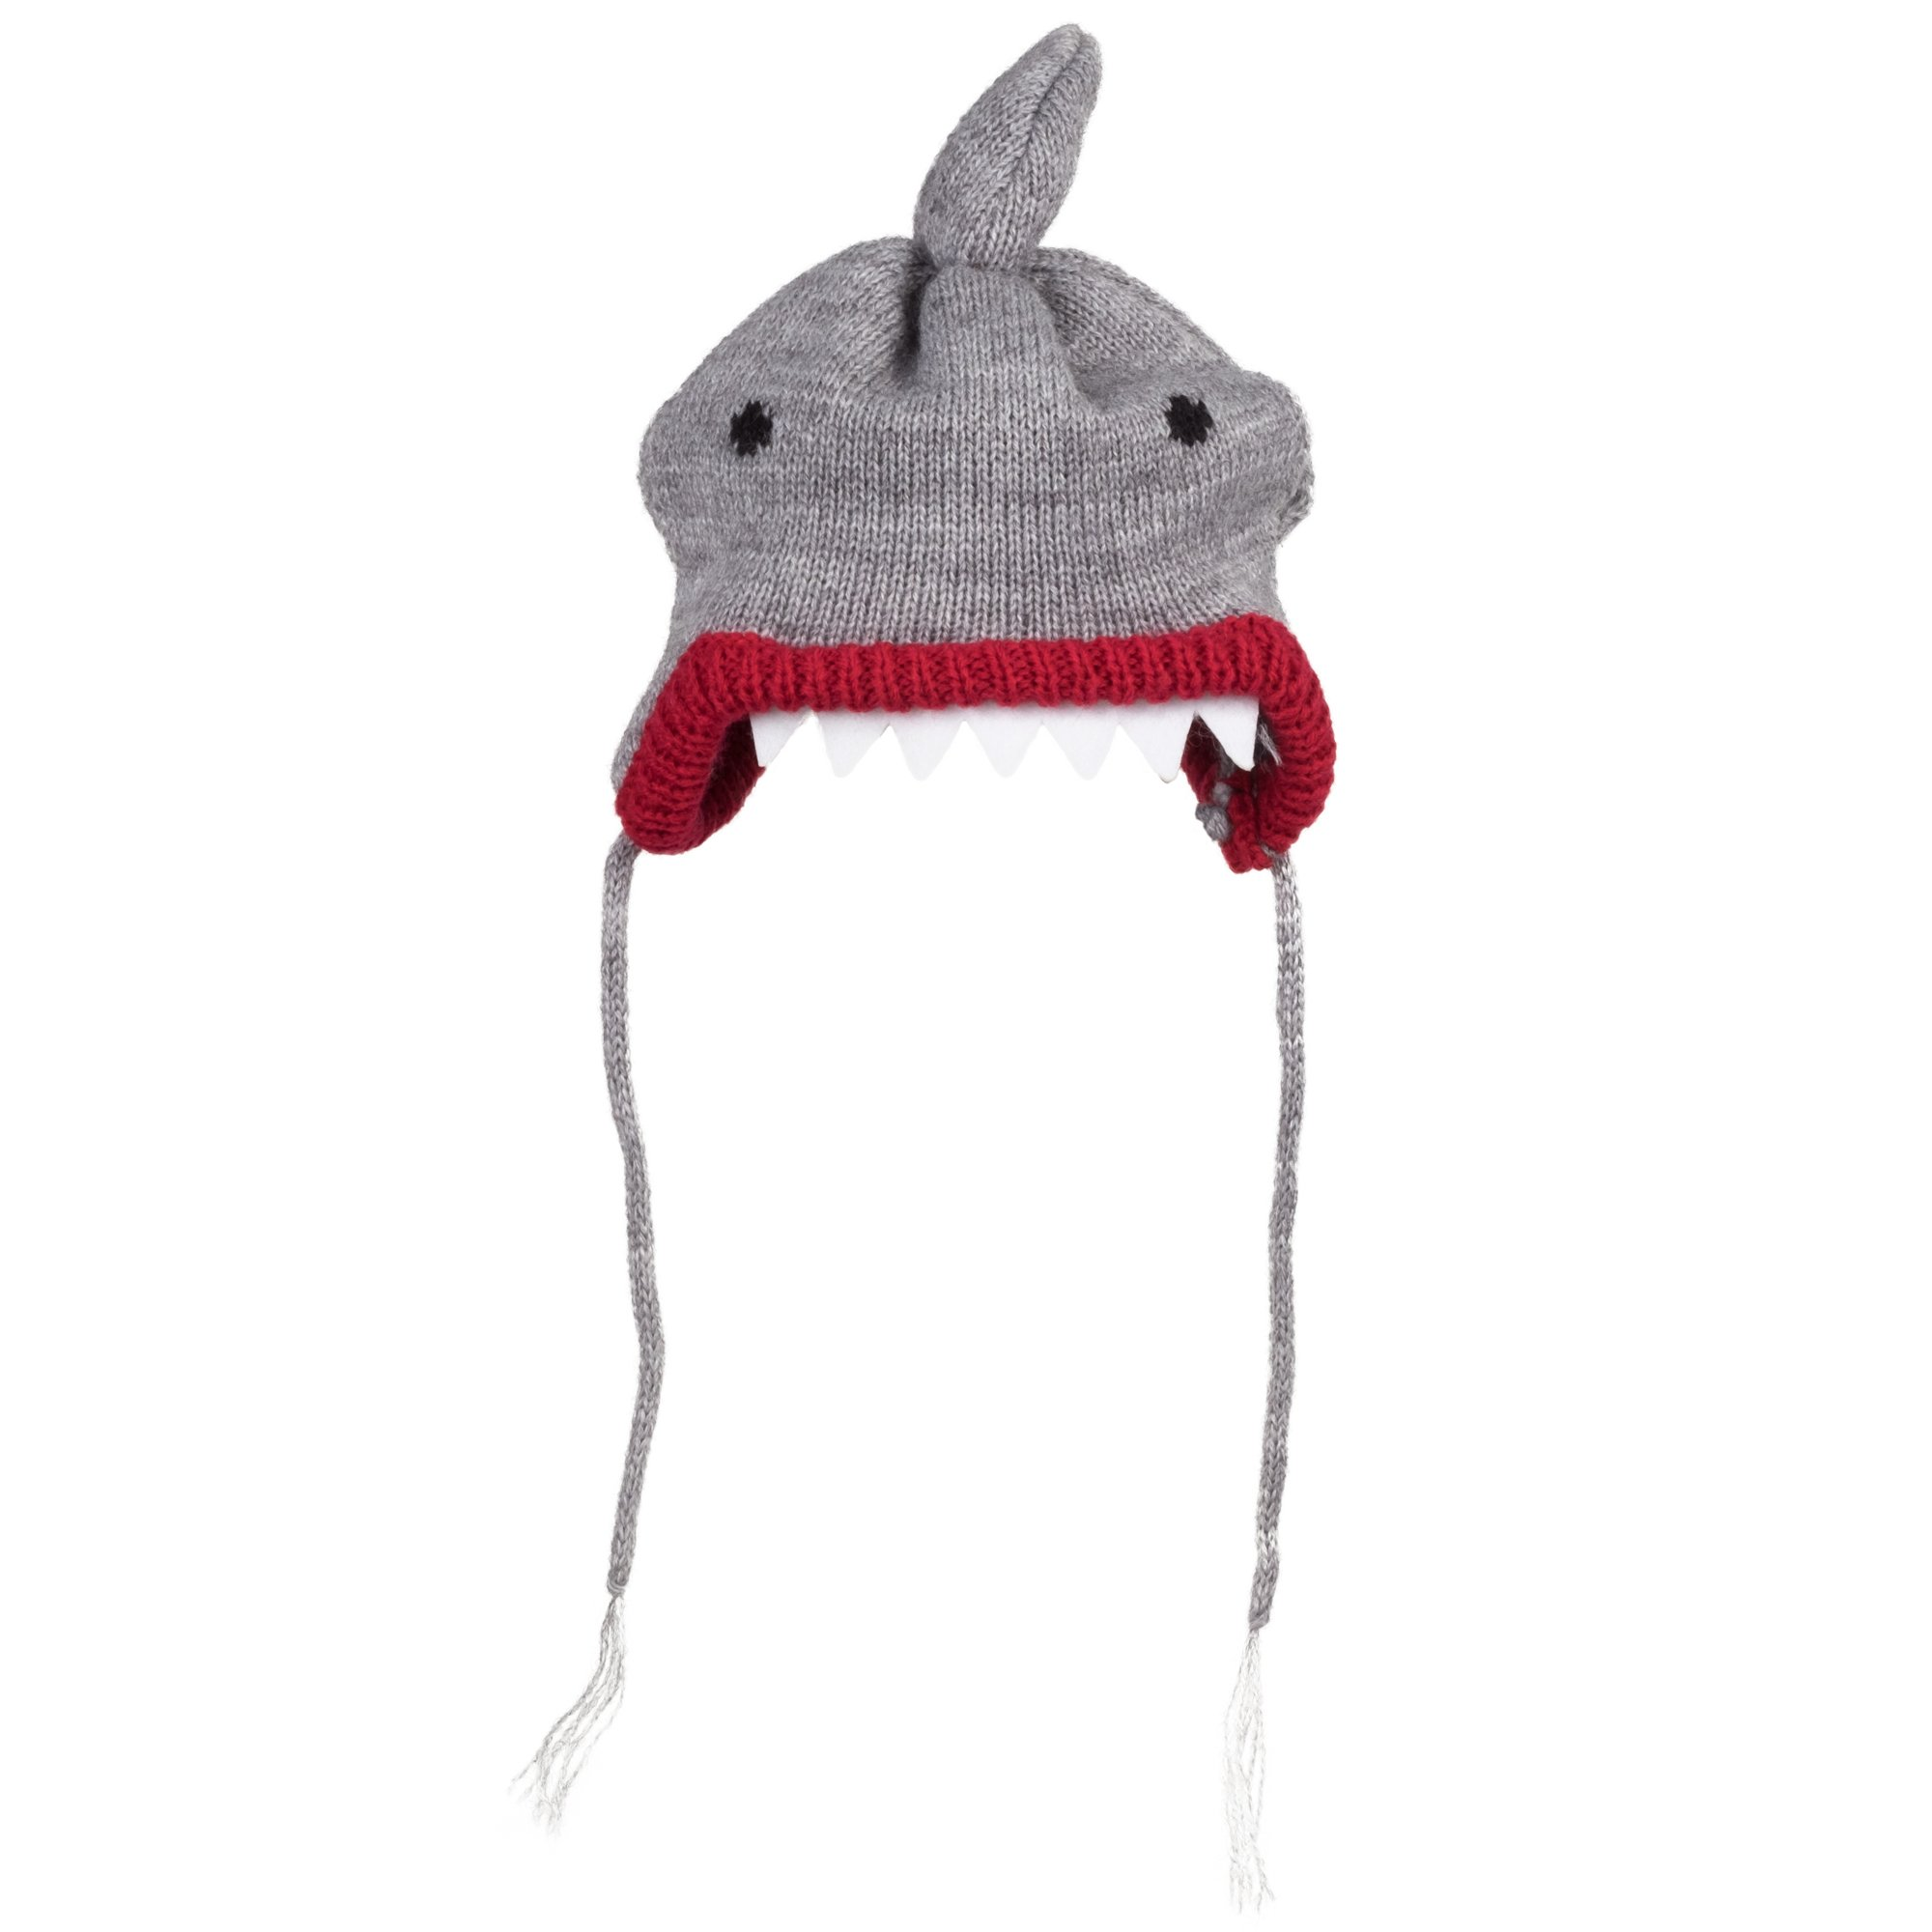 The Worthy Dog Shark Hat for Dogs, Large, Gray by The Worthy Dog